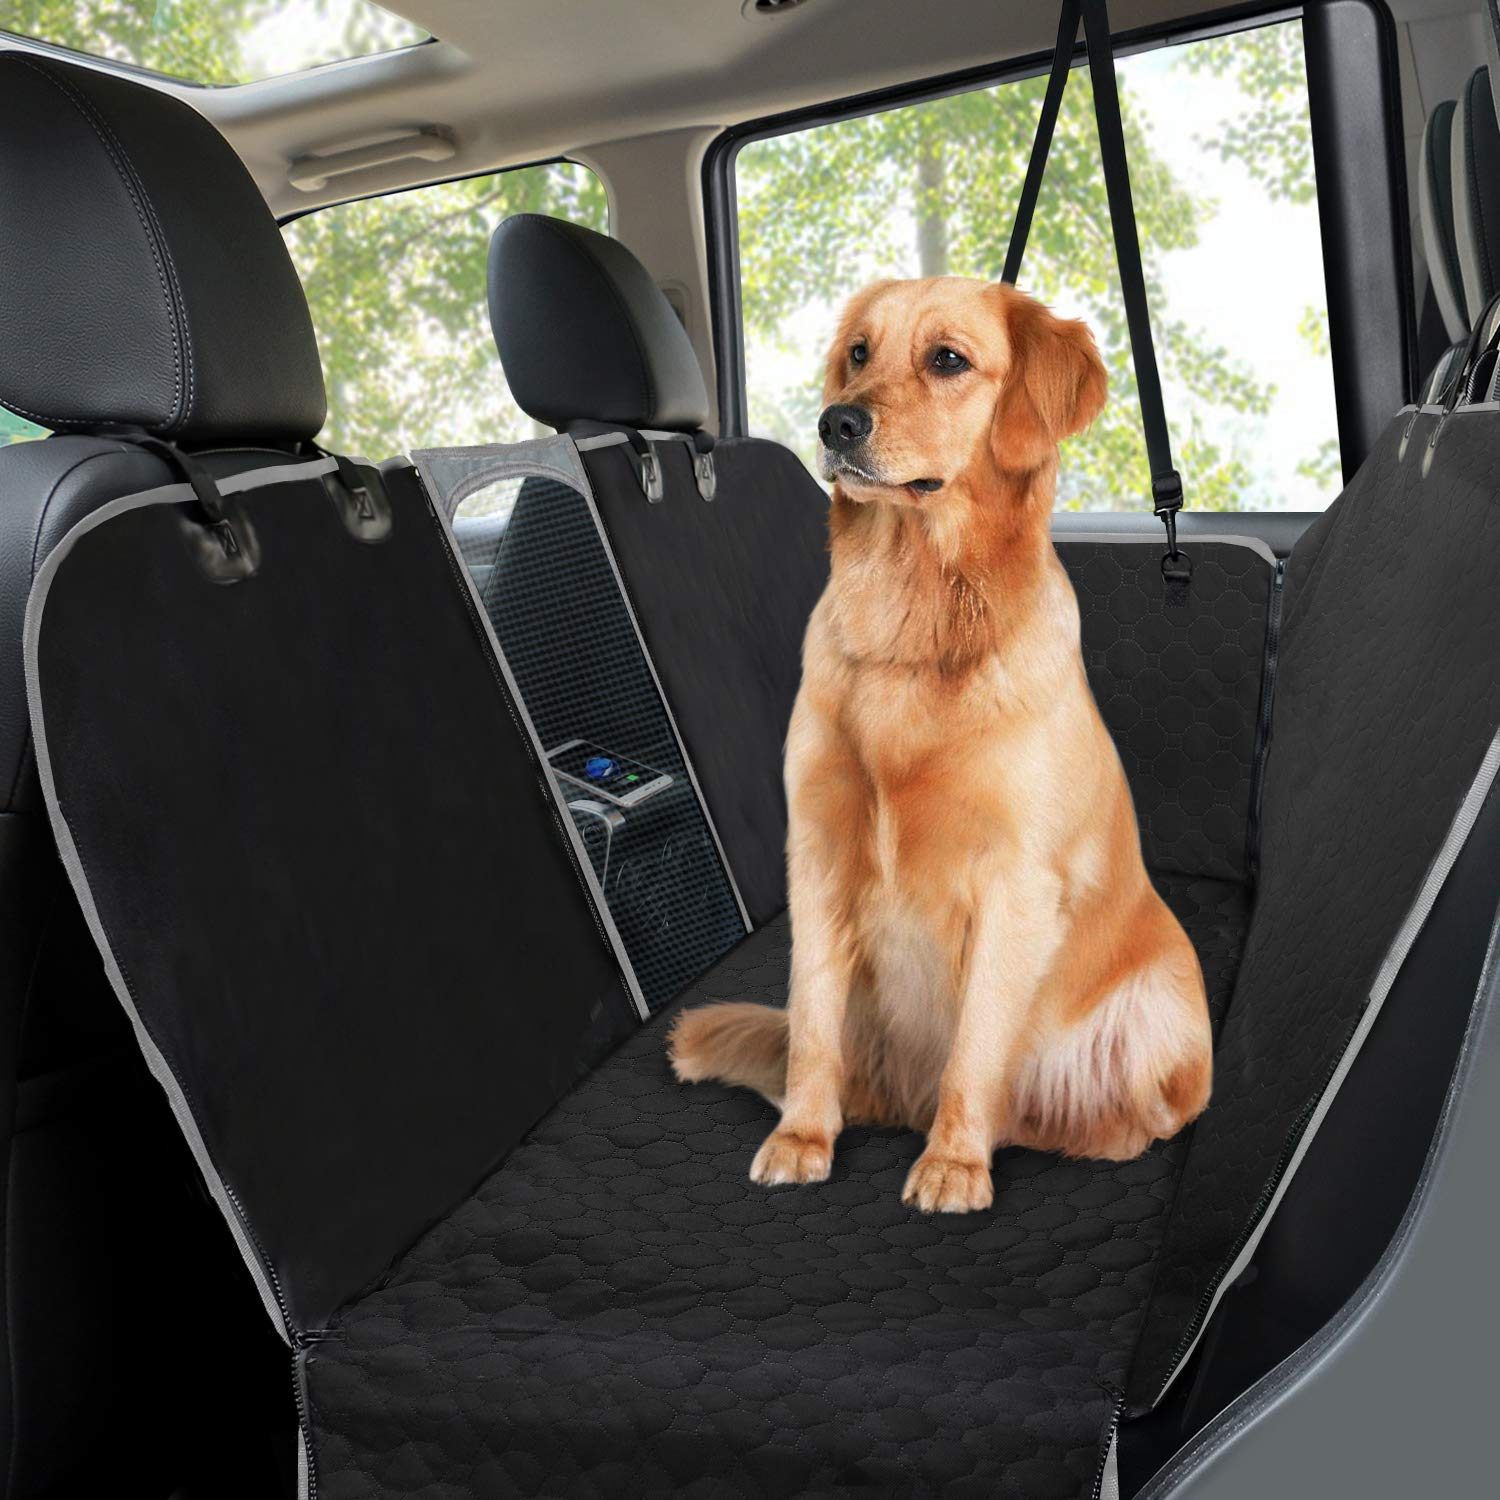 Car Seat Covers for Dogs,Waterproof Backseat Cover for Dogs Car with Mesh Window Side Flaps,Mancro Convertible Scratch Proof Pet Seat Cover Hammock, Durable Soft Seat Protector for Cars Trucks SUVs by Mancro